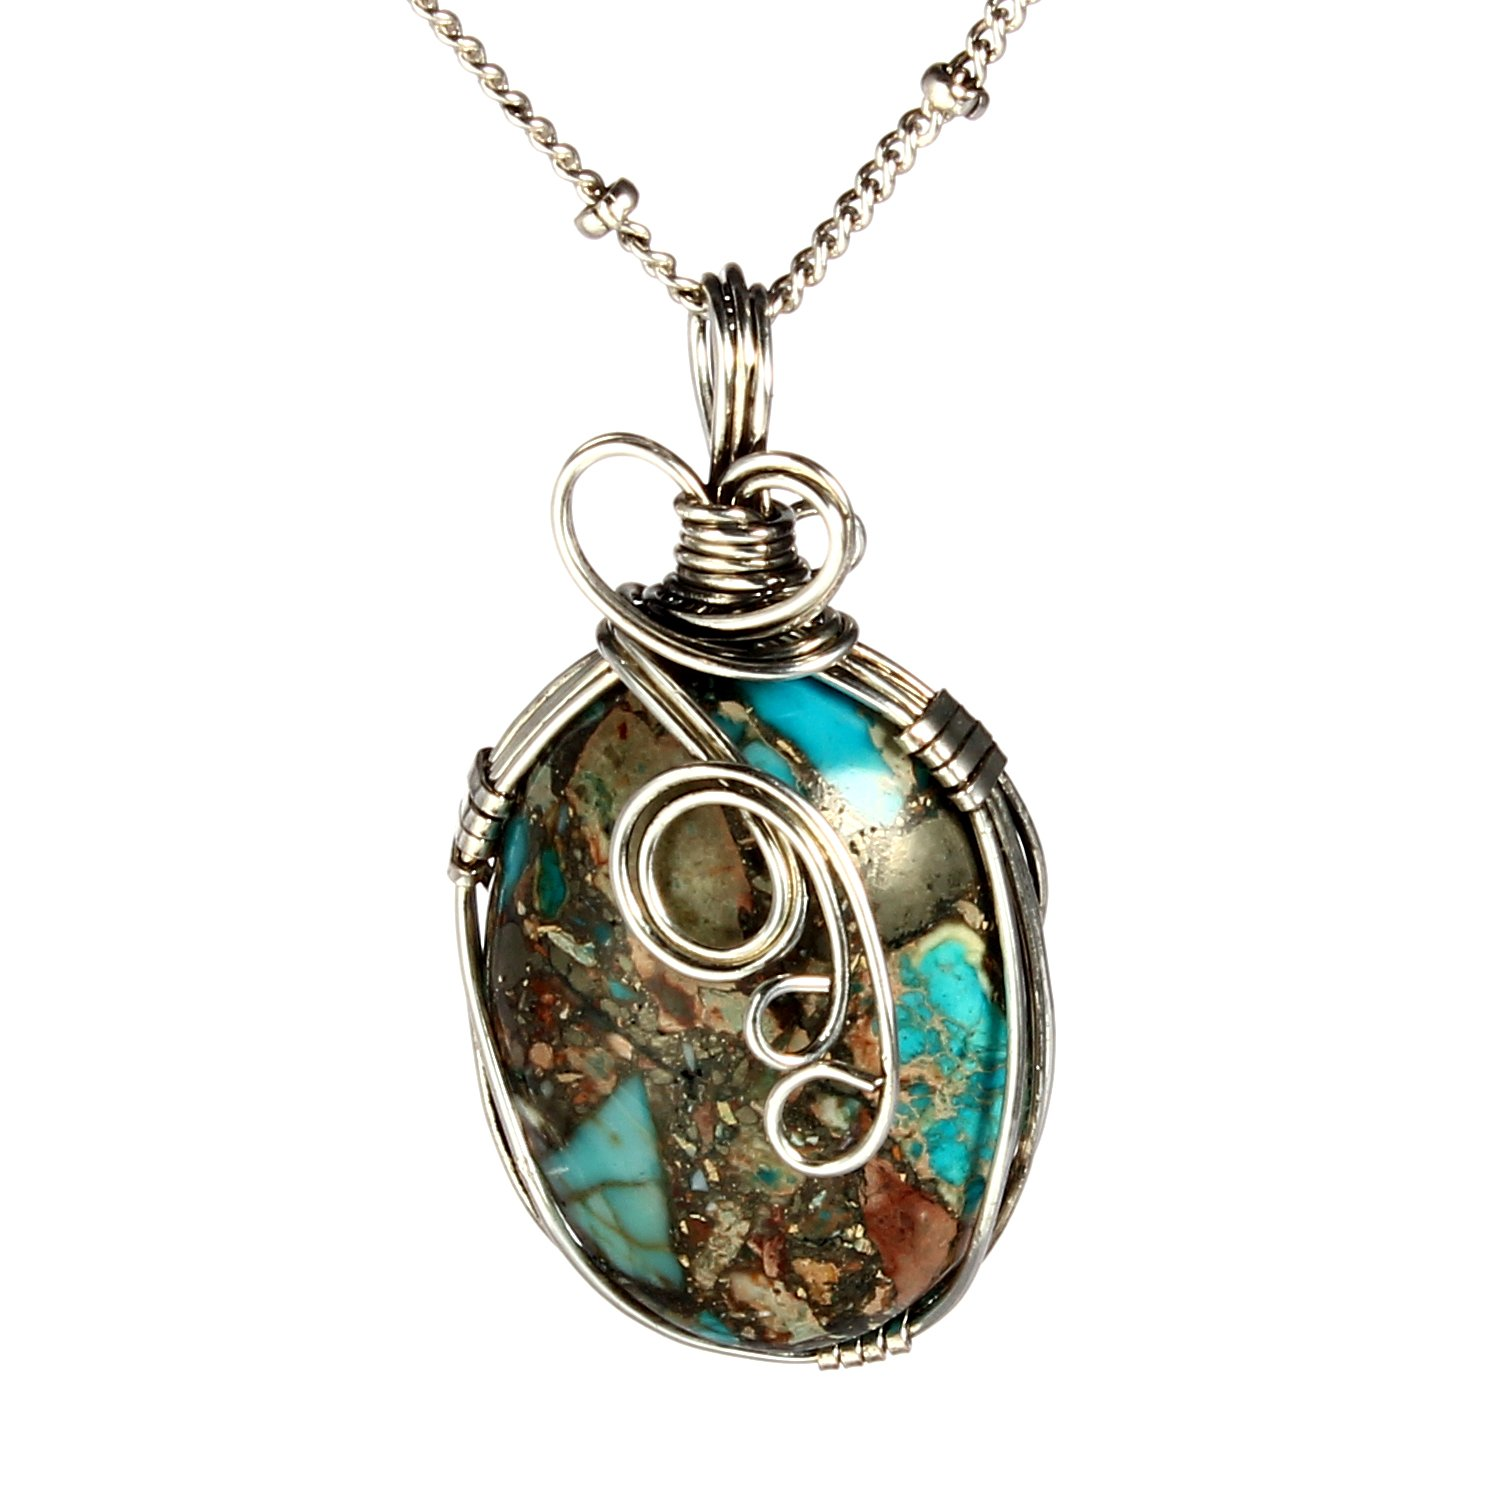 Bonnie Handmade Wire Necklace Natural Stone Agate Women's Art Jewelry-Wire Wrap (Style 3)